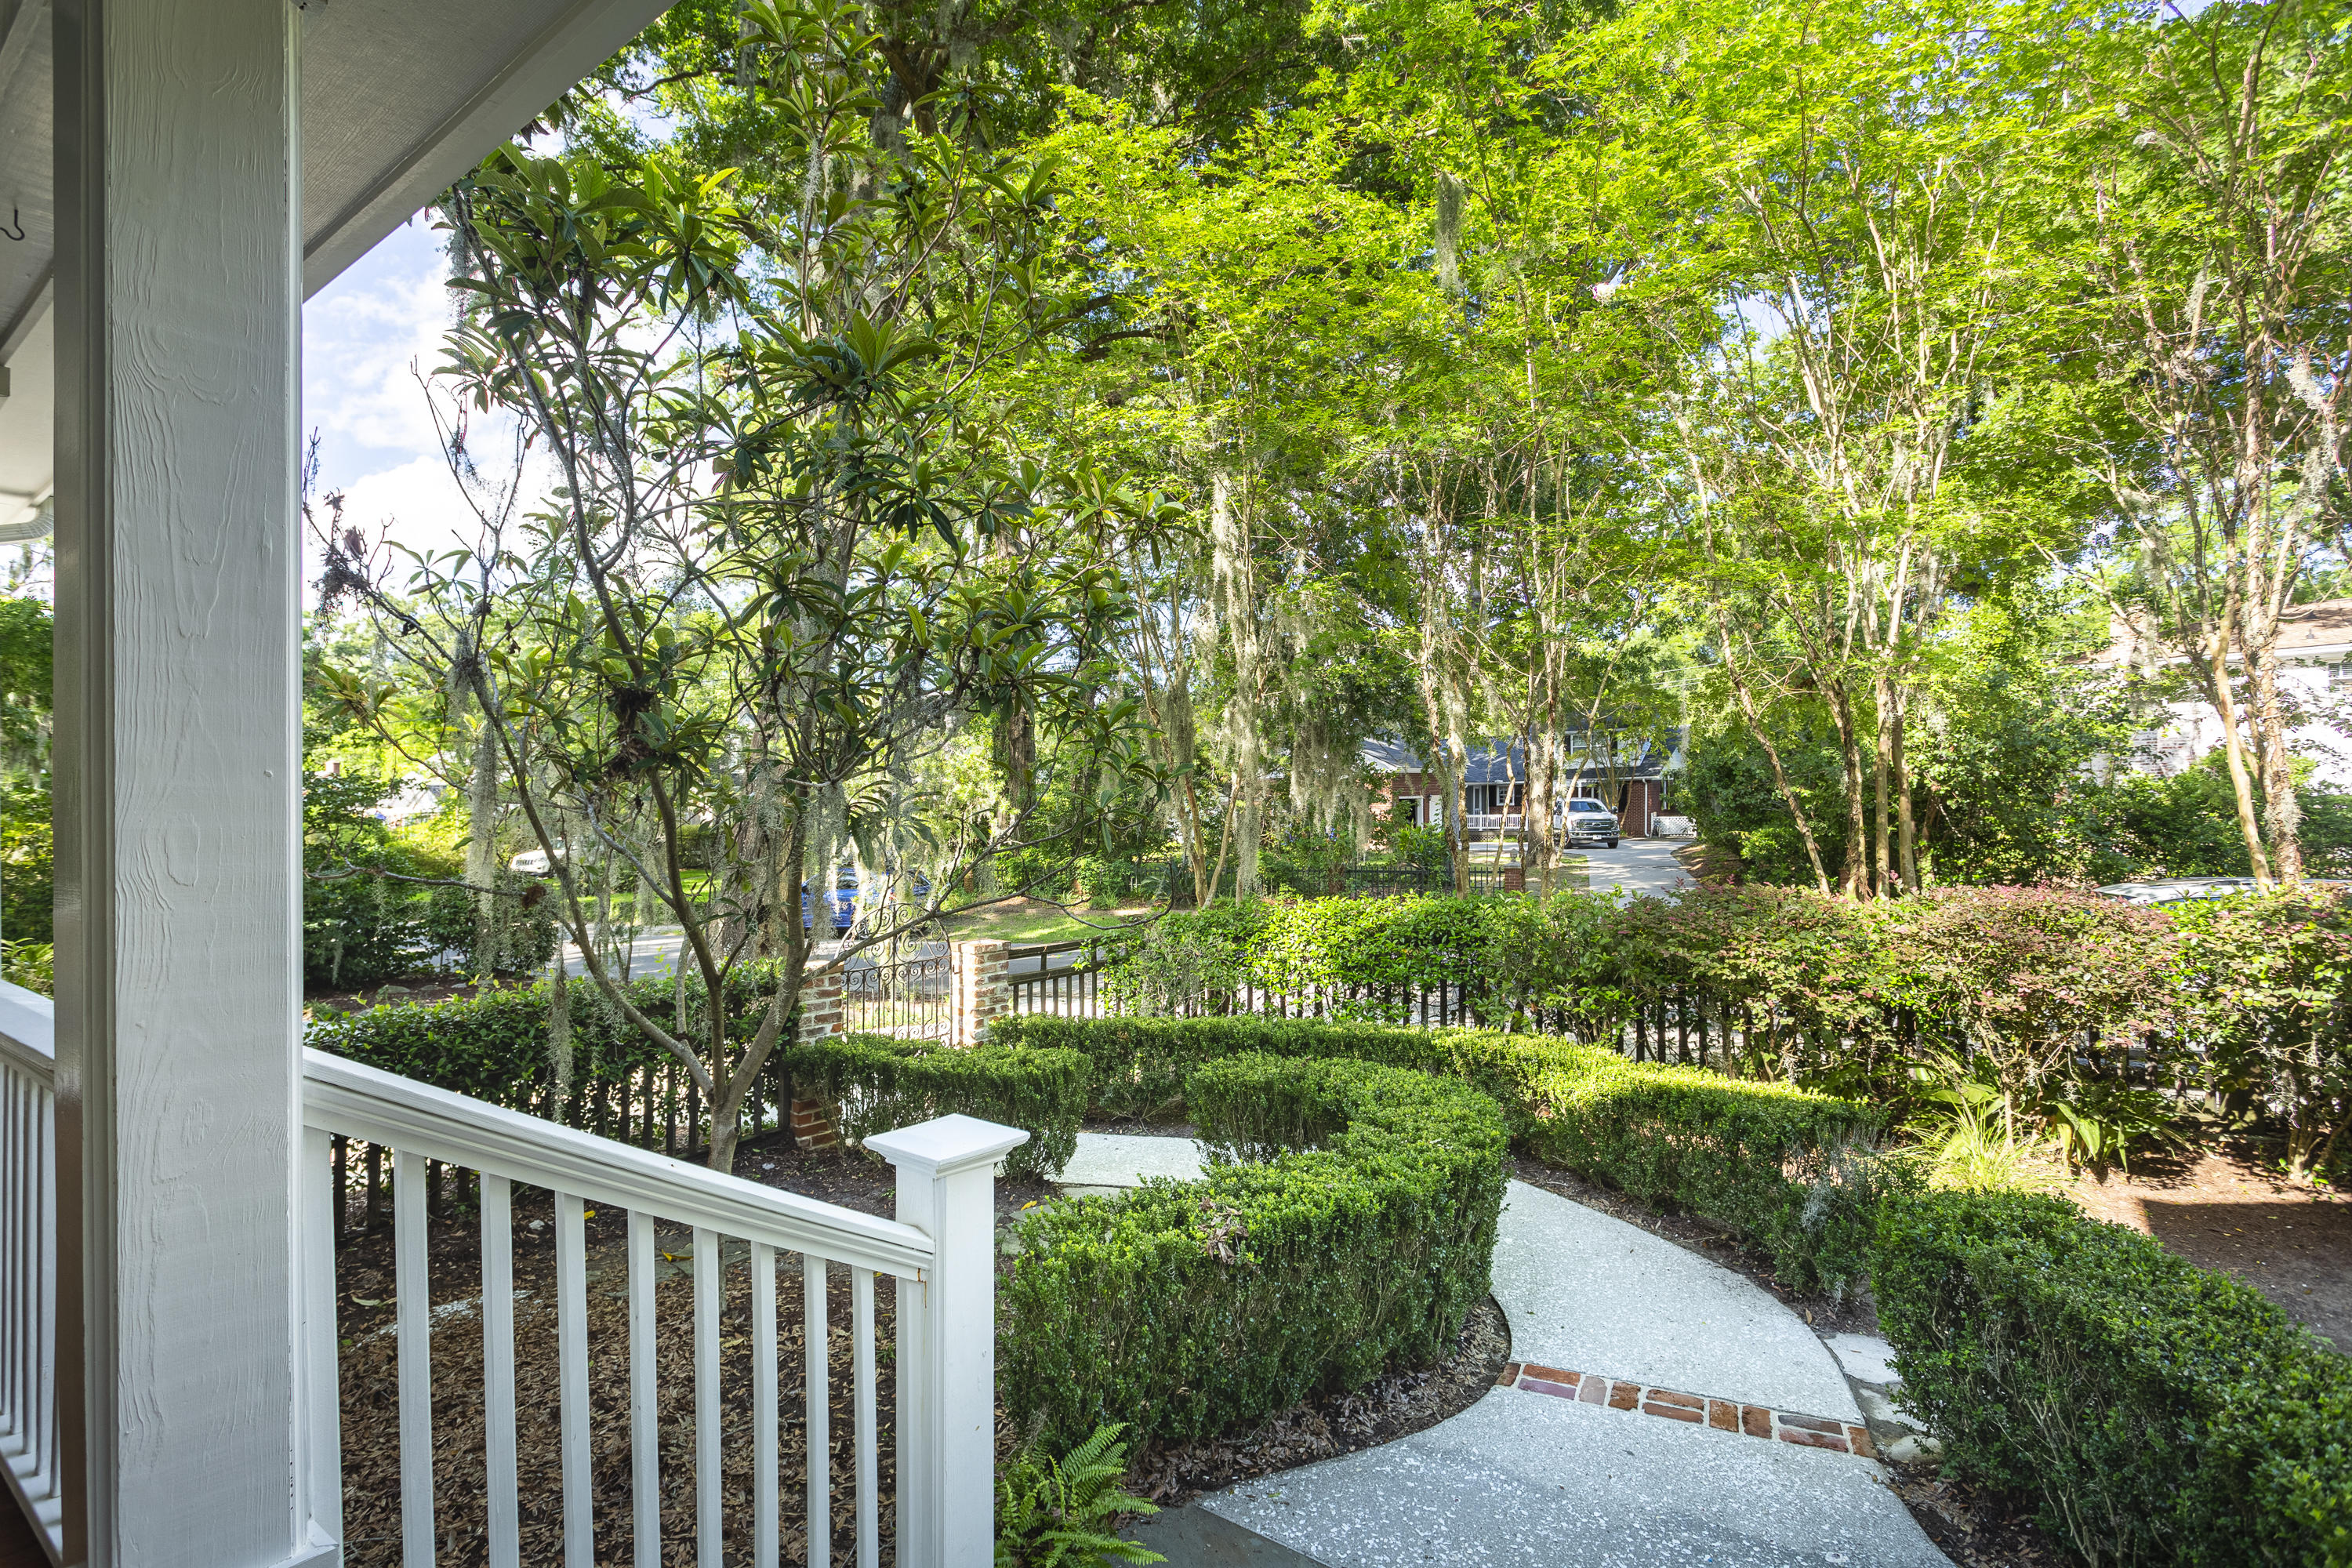 Riverland Terrace Homes For Sale - 179 Riverland, Charleston, SC - 29